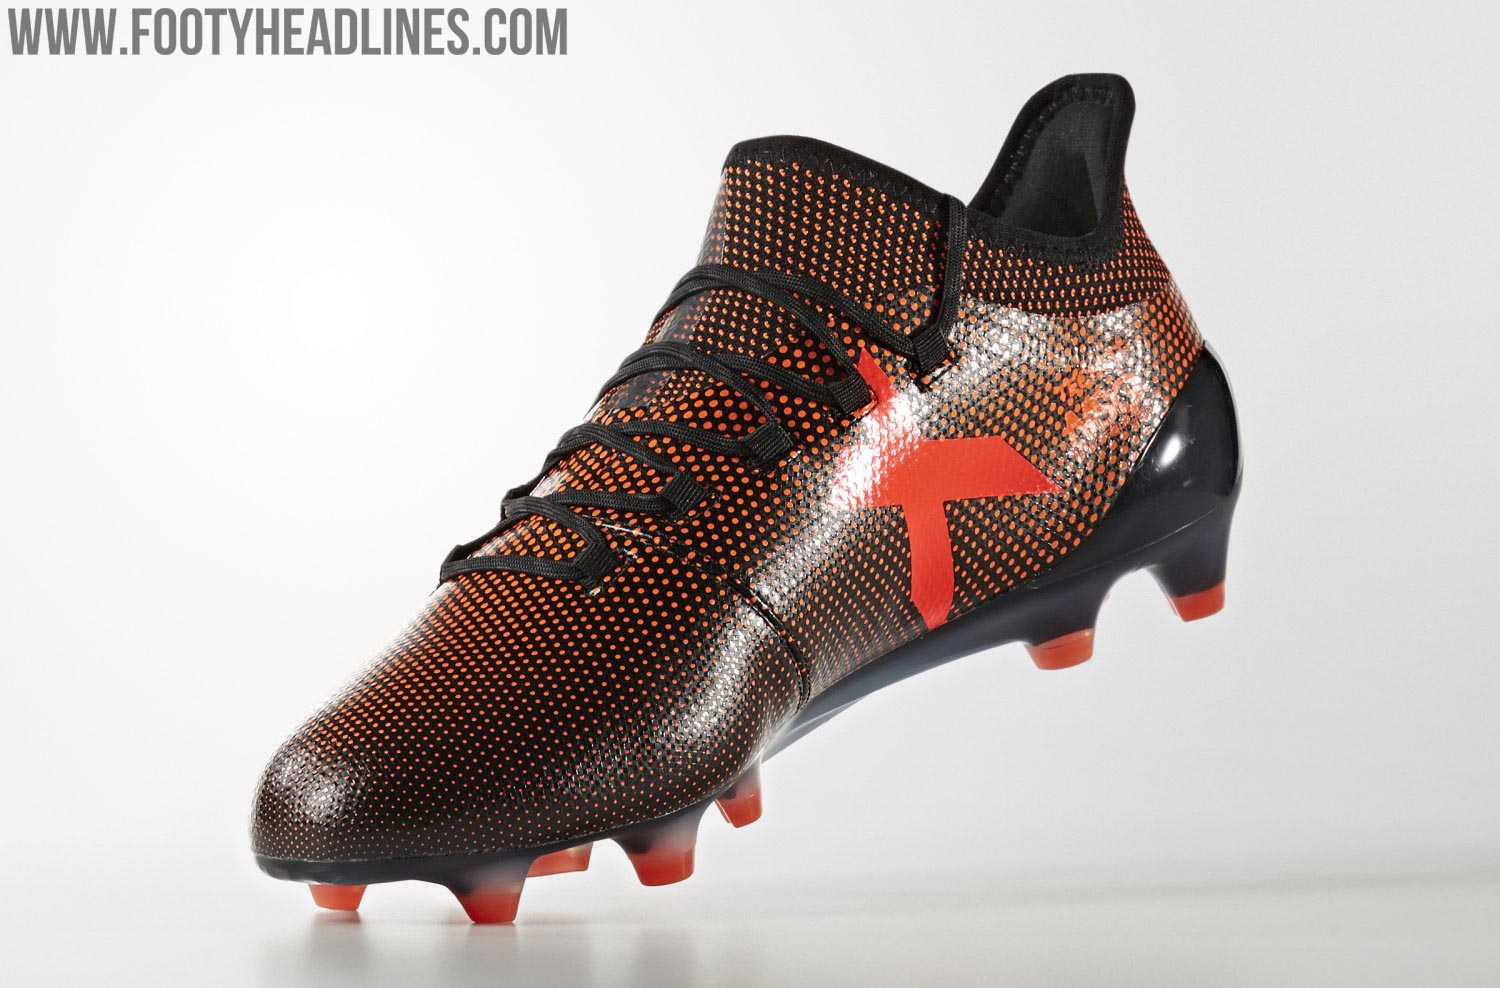 Tech-wise, the Adidas X 17.1 Pyro Storm boots are the same as all previous  releases. They are made for ultimate speed featuring a feature a techfit  upper ...